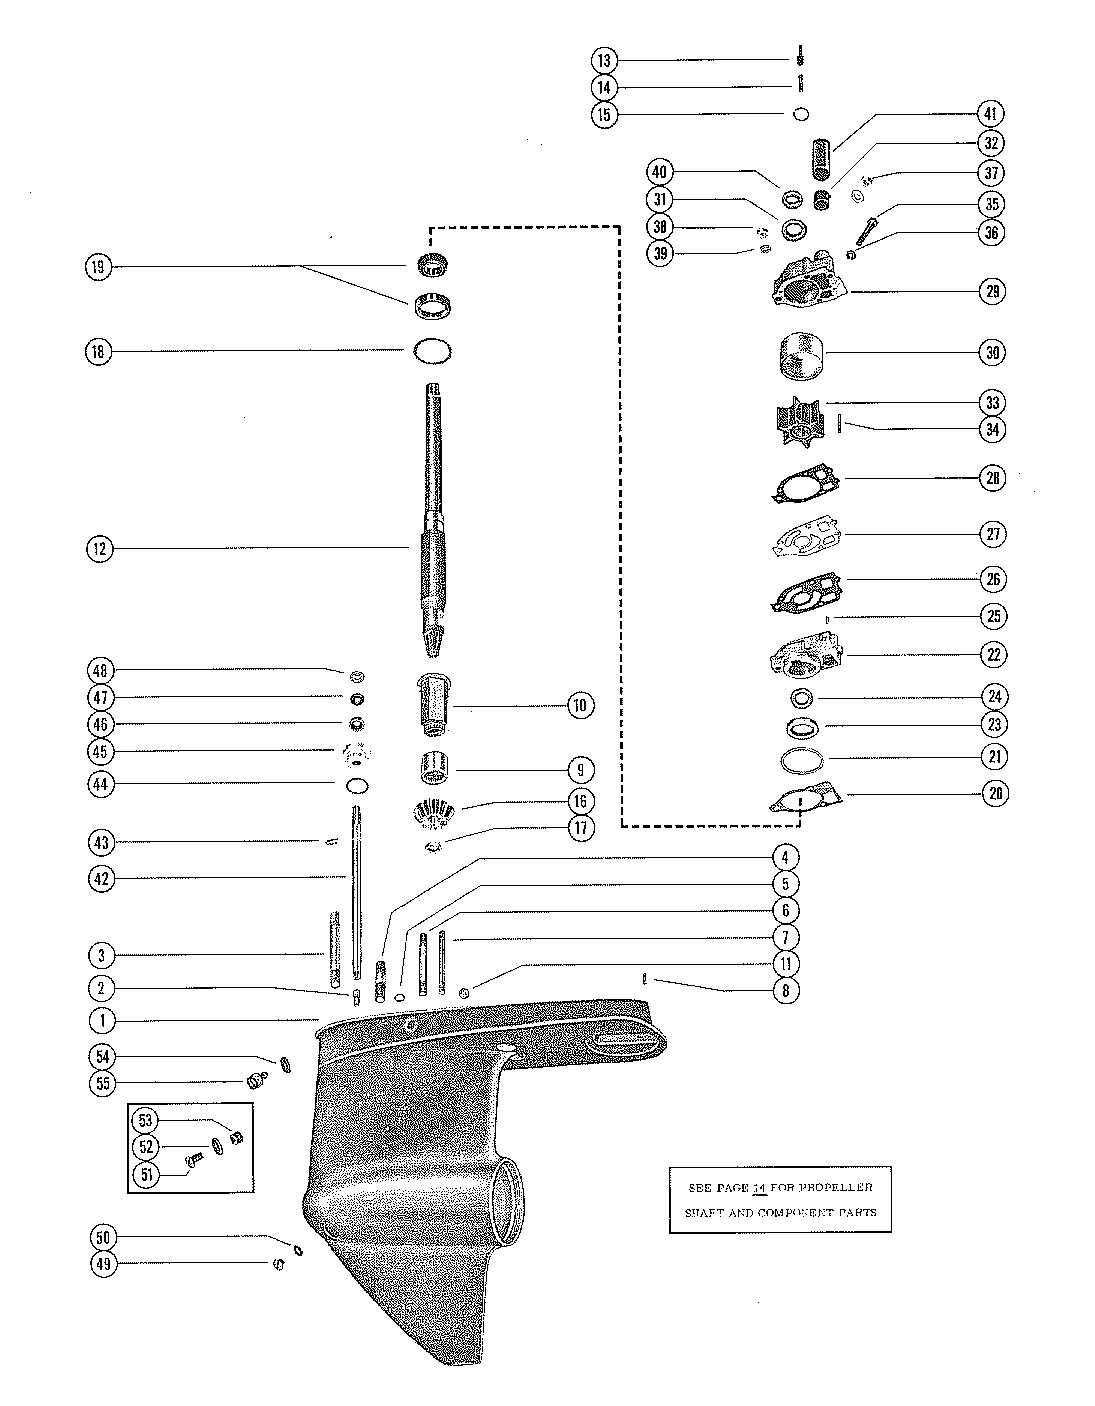 Wiring Diagram For Electric Fuel Pump Get Free Image About